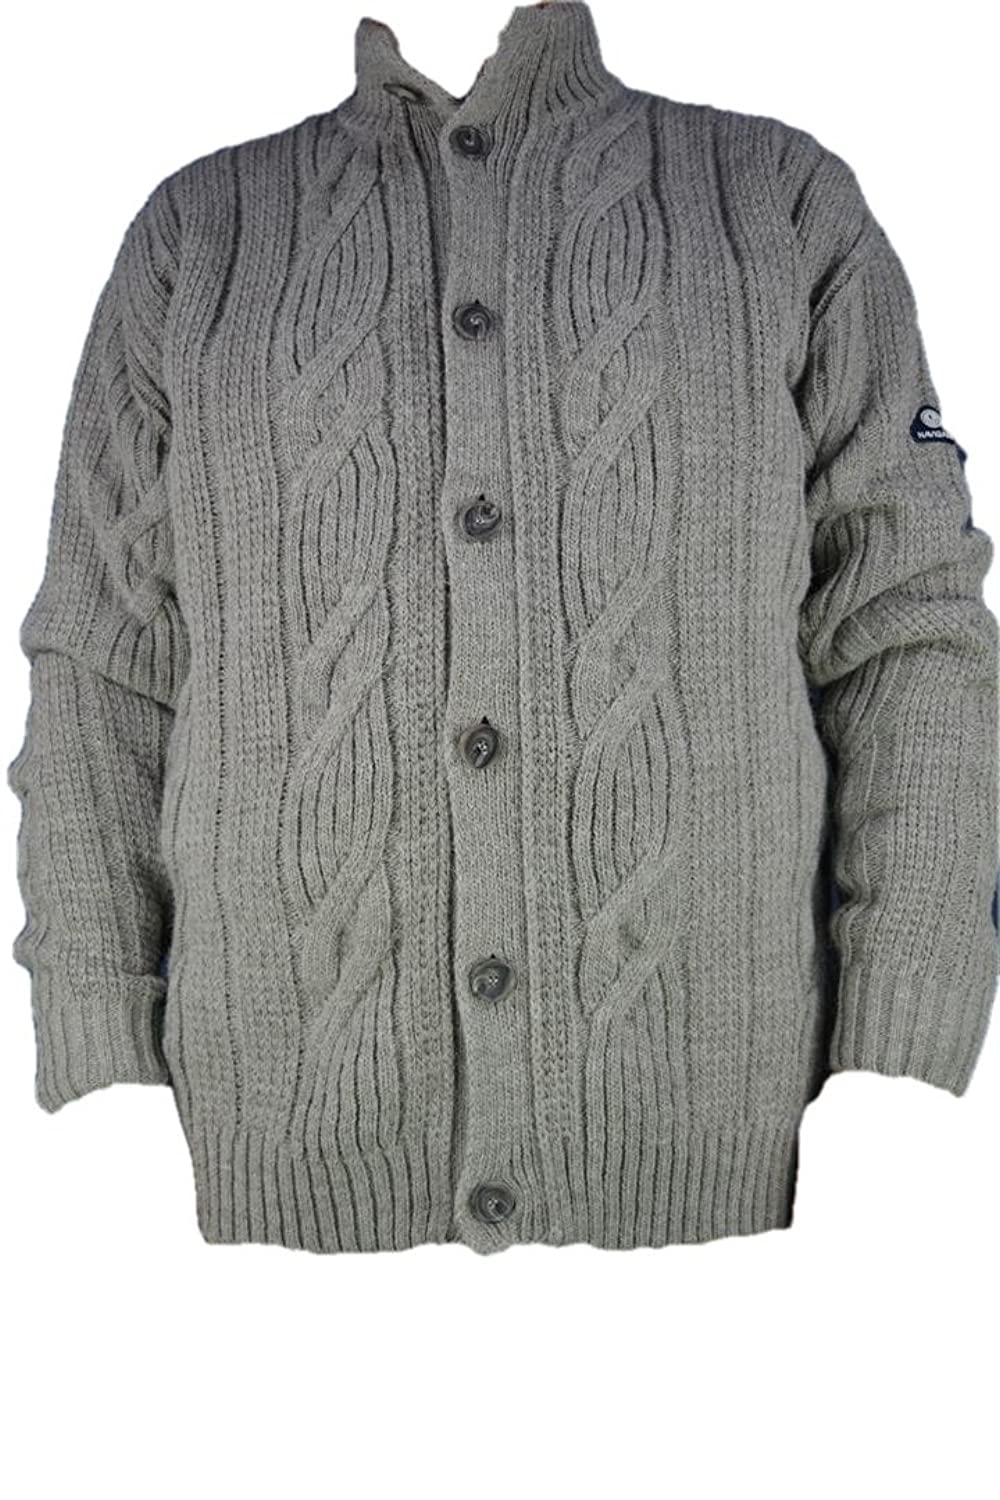 Navigare Men's Long sleeve Cardigan